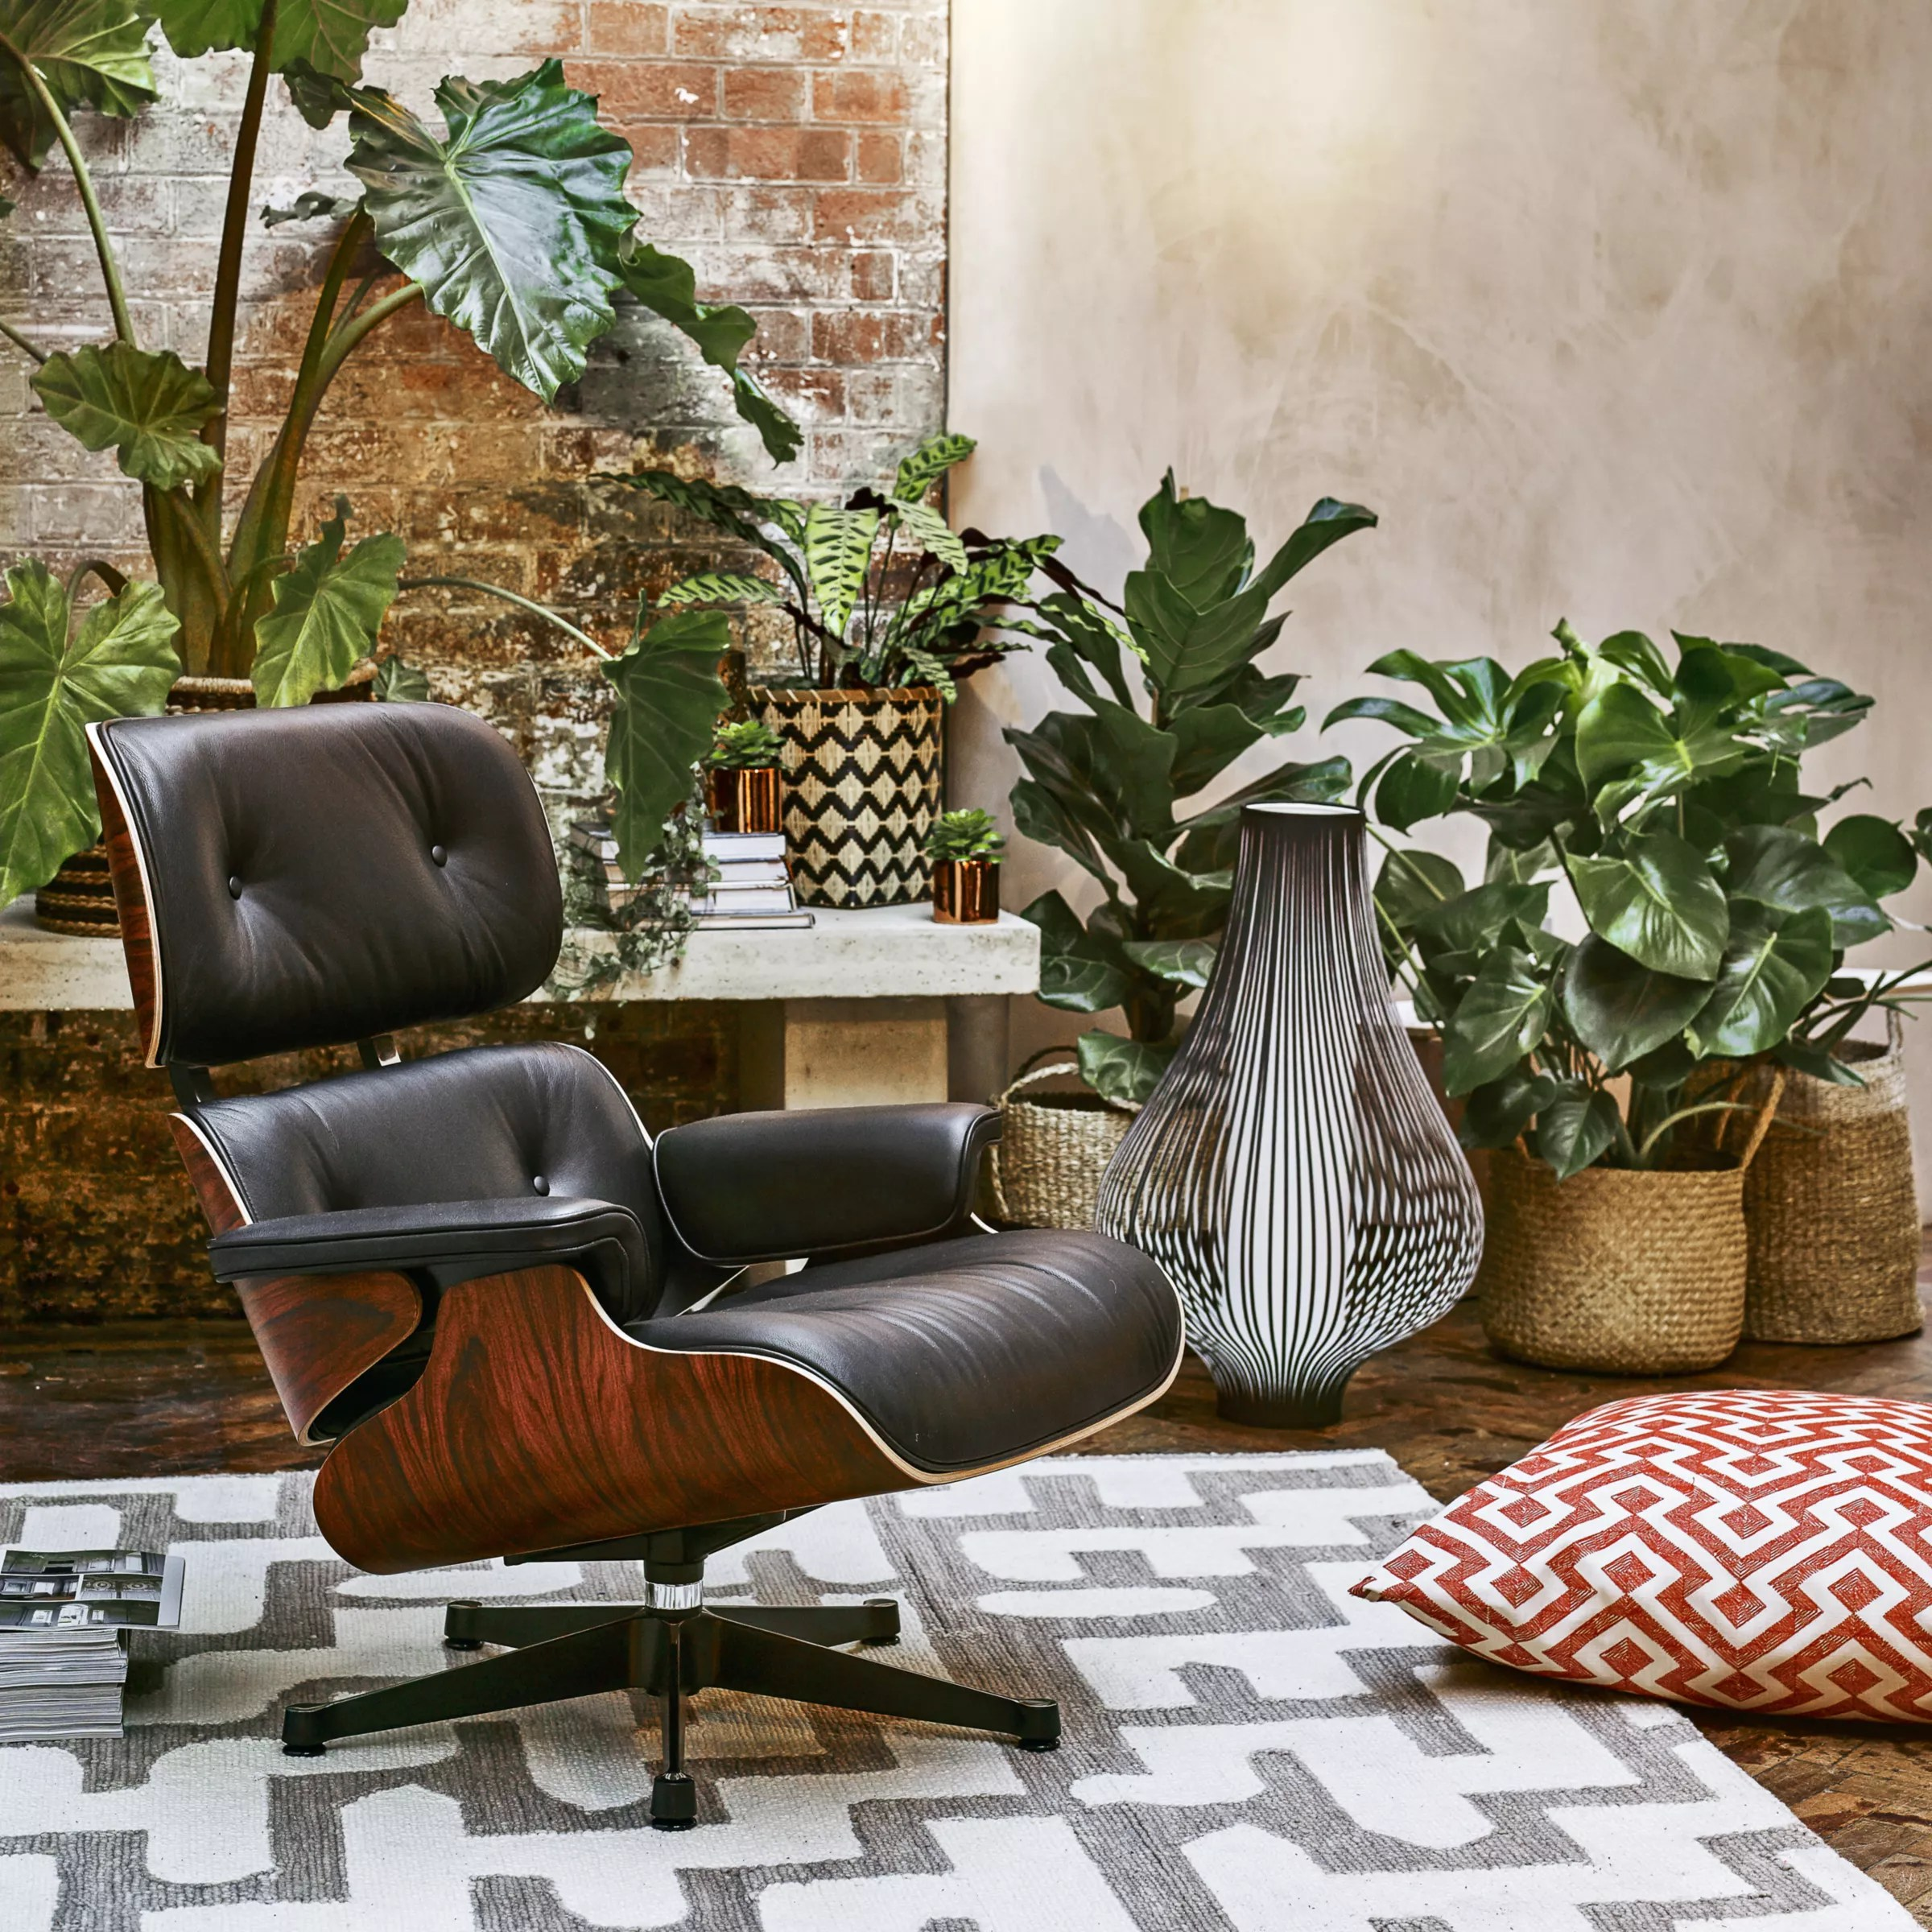 Vitra Eames Lounge Chair Black Vitra Eames Lounge Armchair Black Pallisander Shell